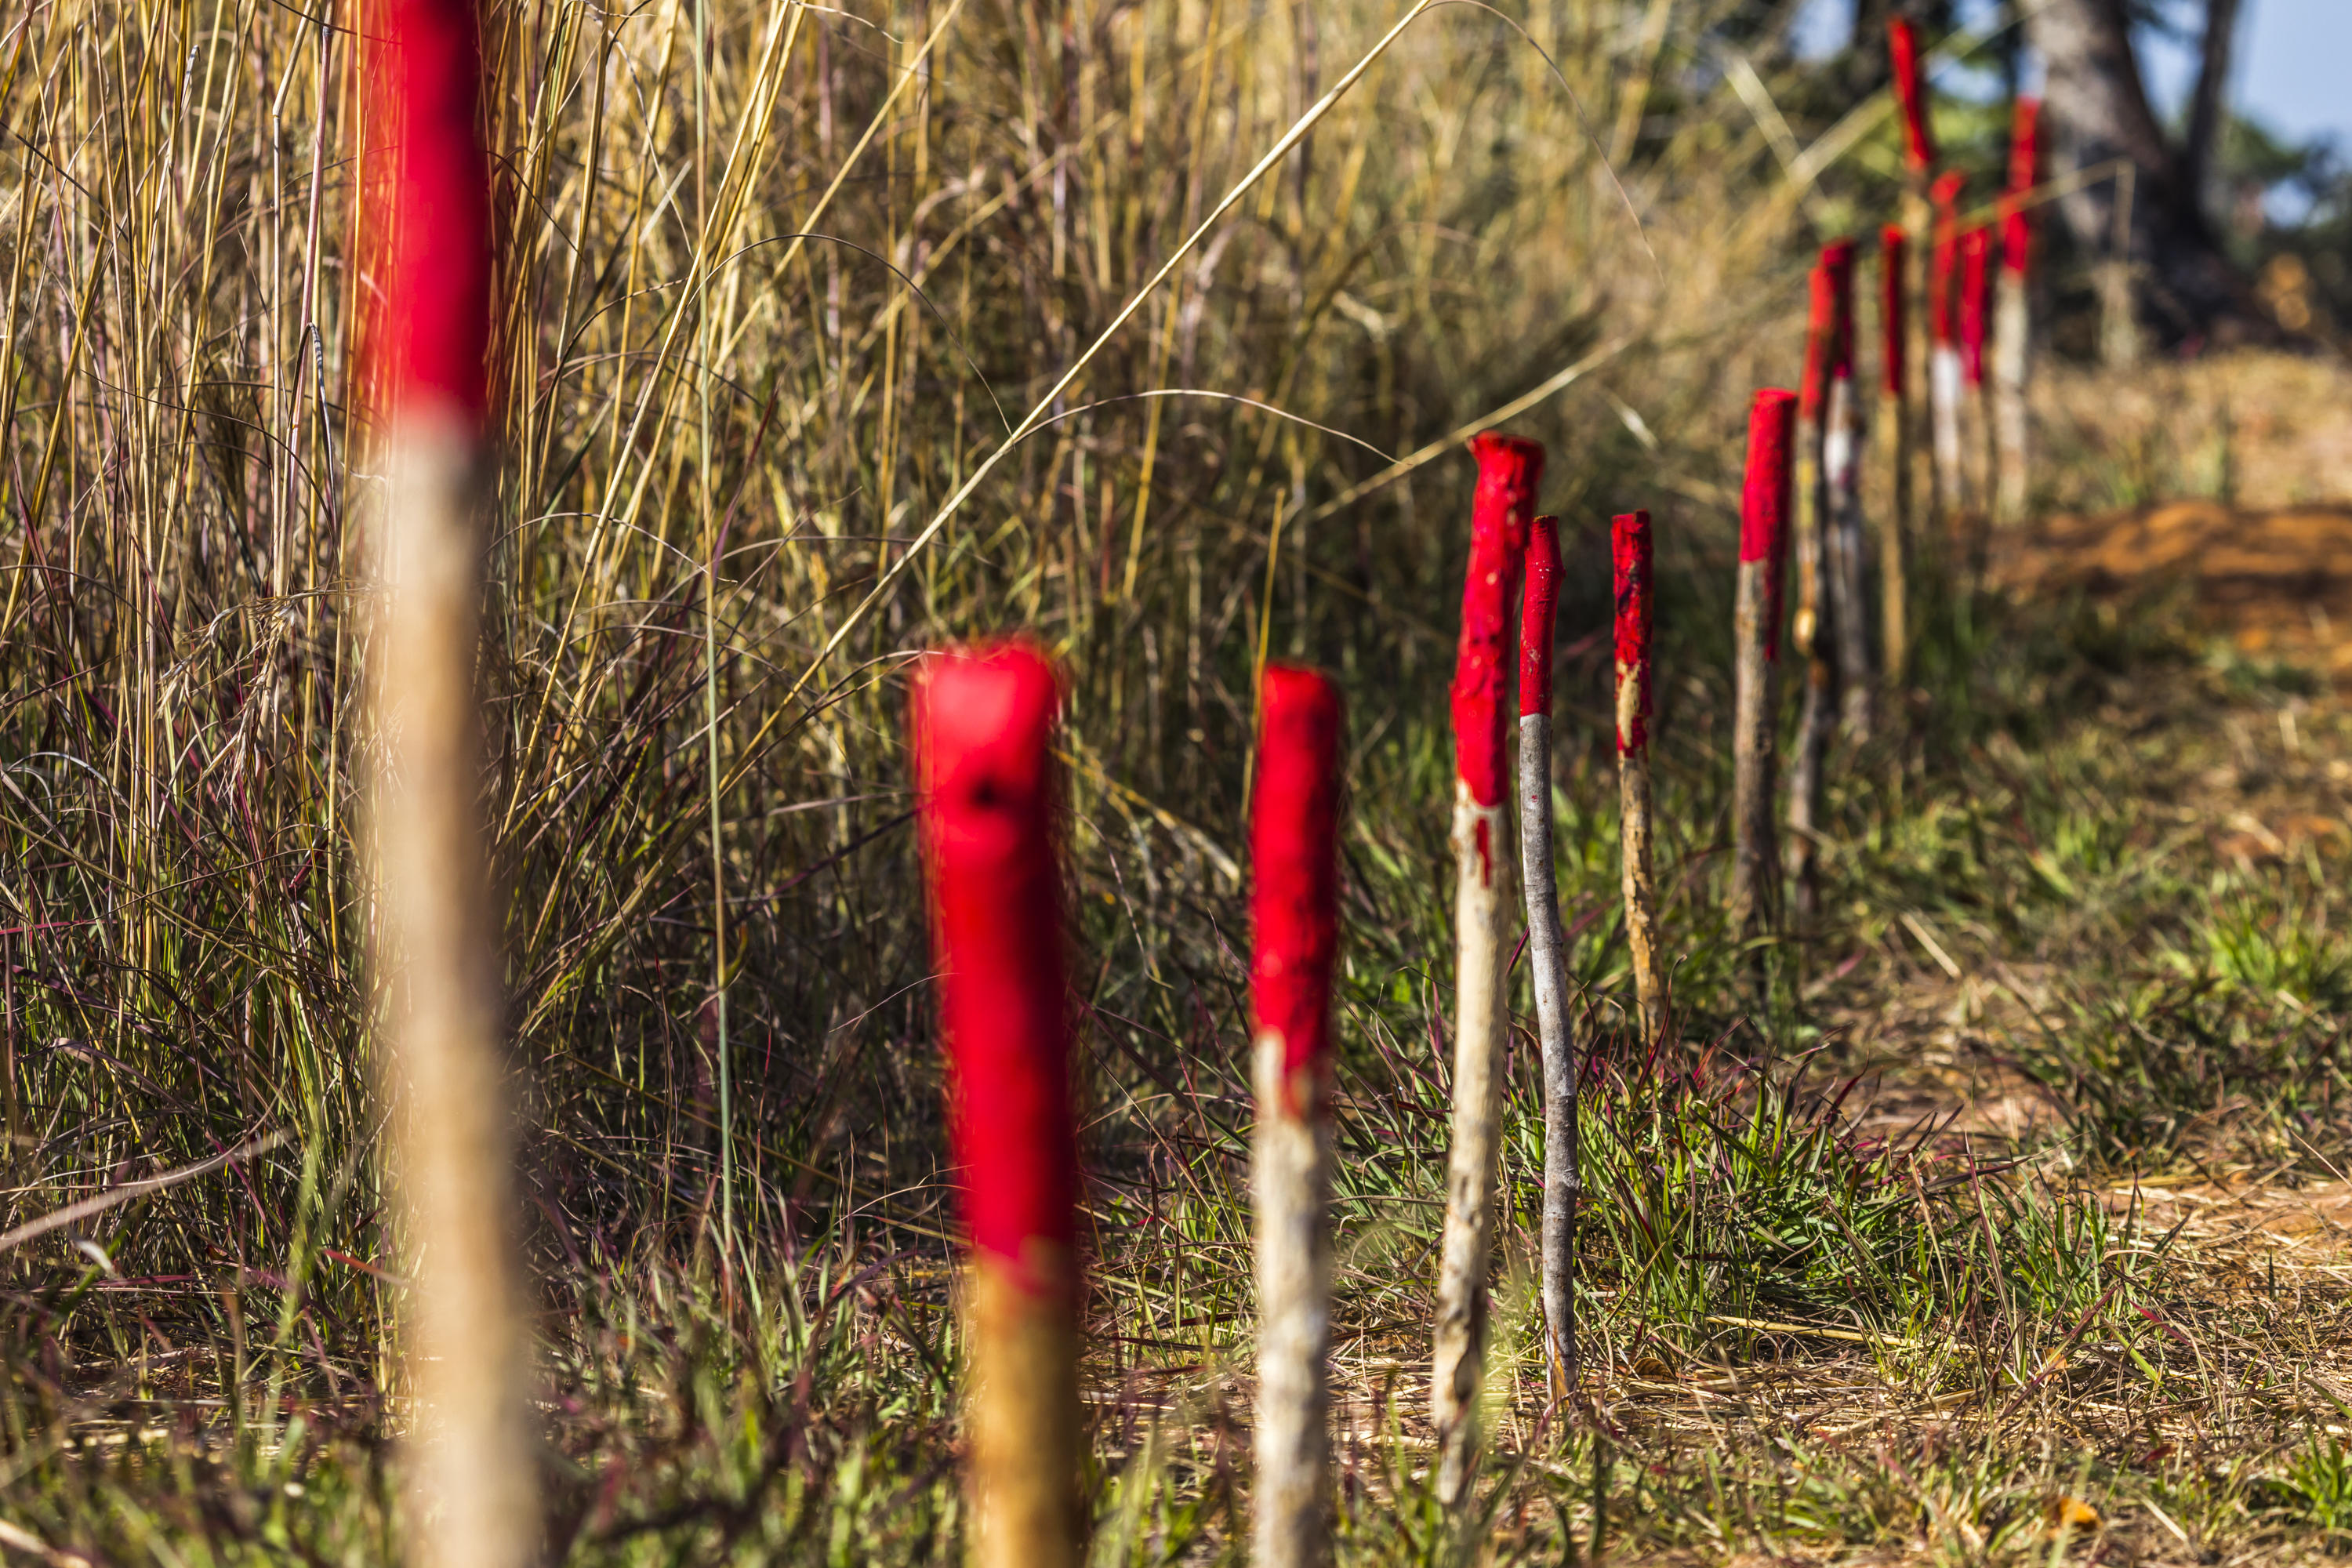 Red-tipped sticks stake out a boundary between safe ground and live land mines.